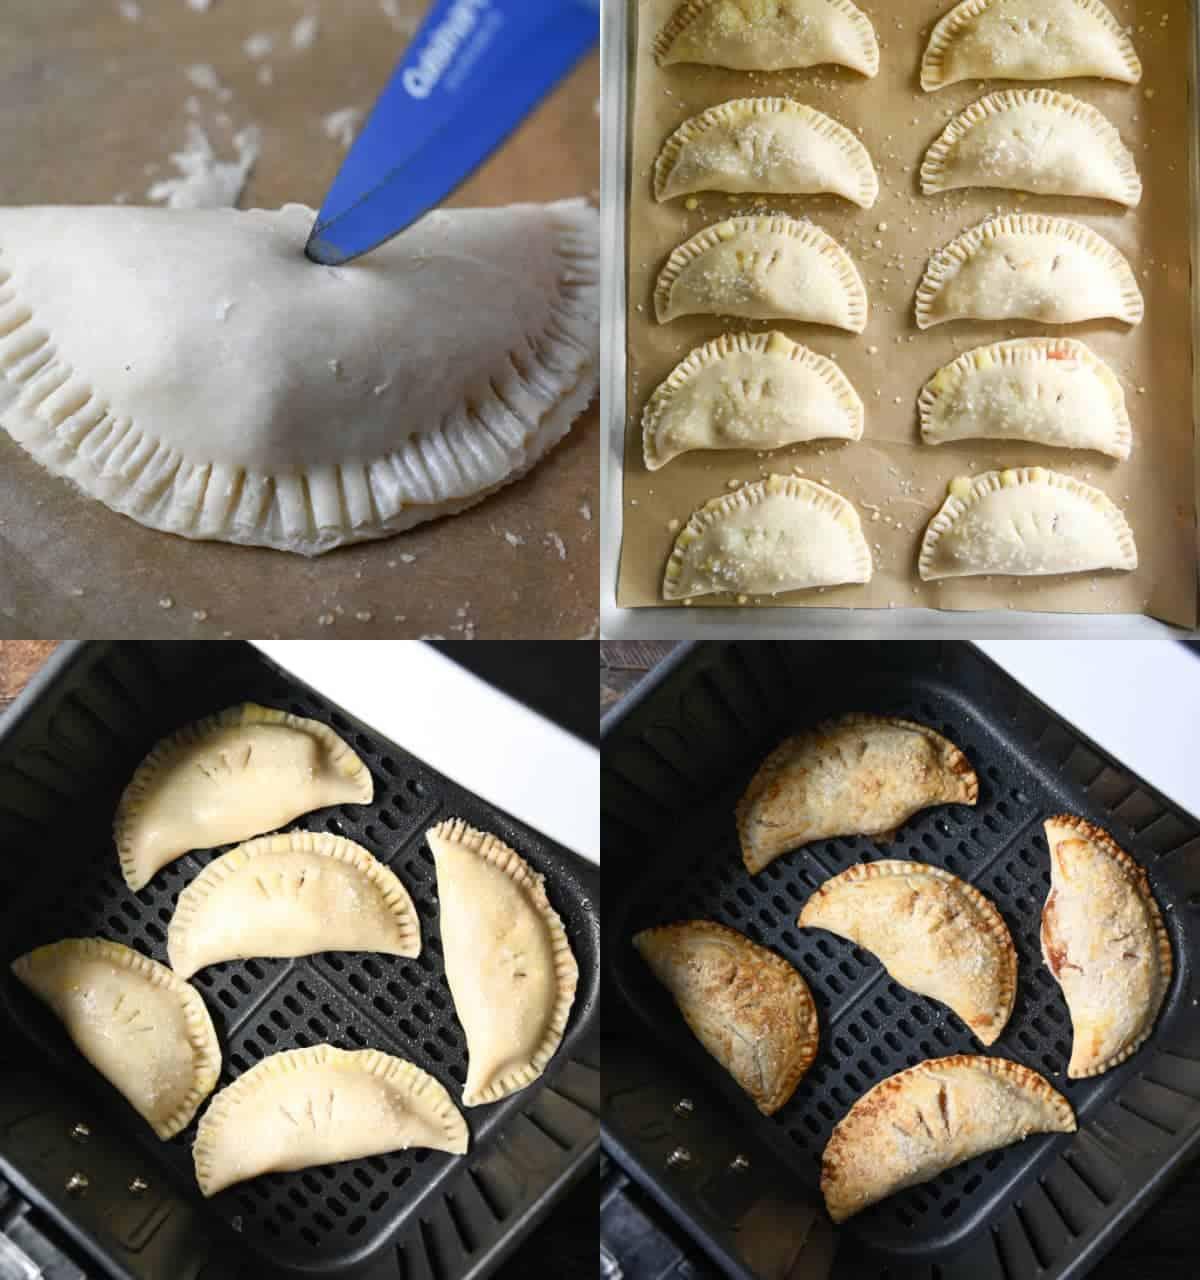 Four process photos. First one, a small blue knife making slices in the top. Second one, 10 hand pies lined up on a baking sheet. Third one, five hand pies placed in a air fryer basket. Fourth one, five hand pies all finished cooking in an air fryer basket.